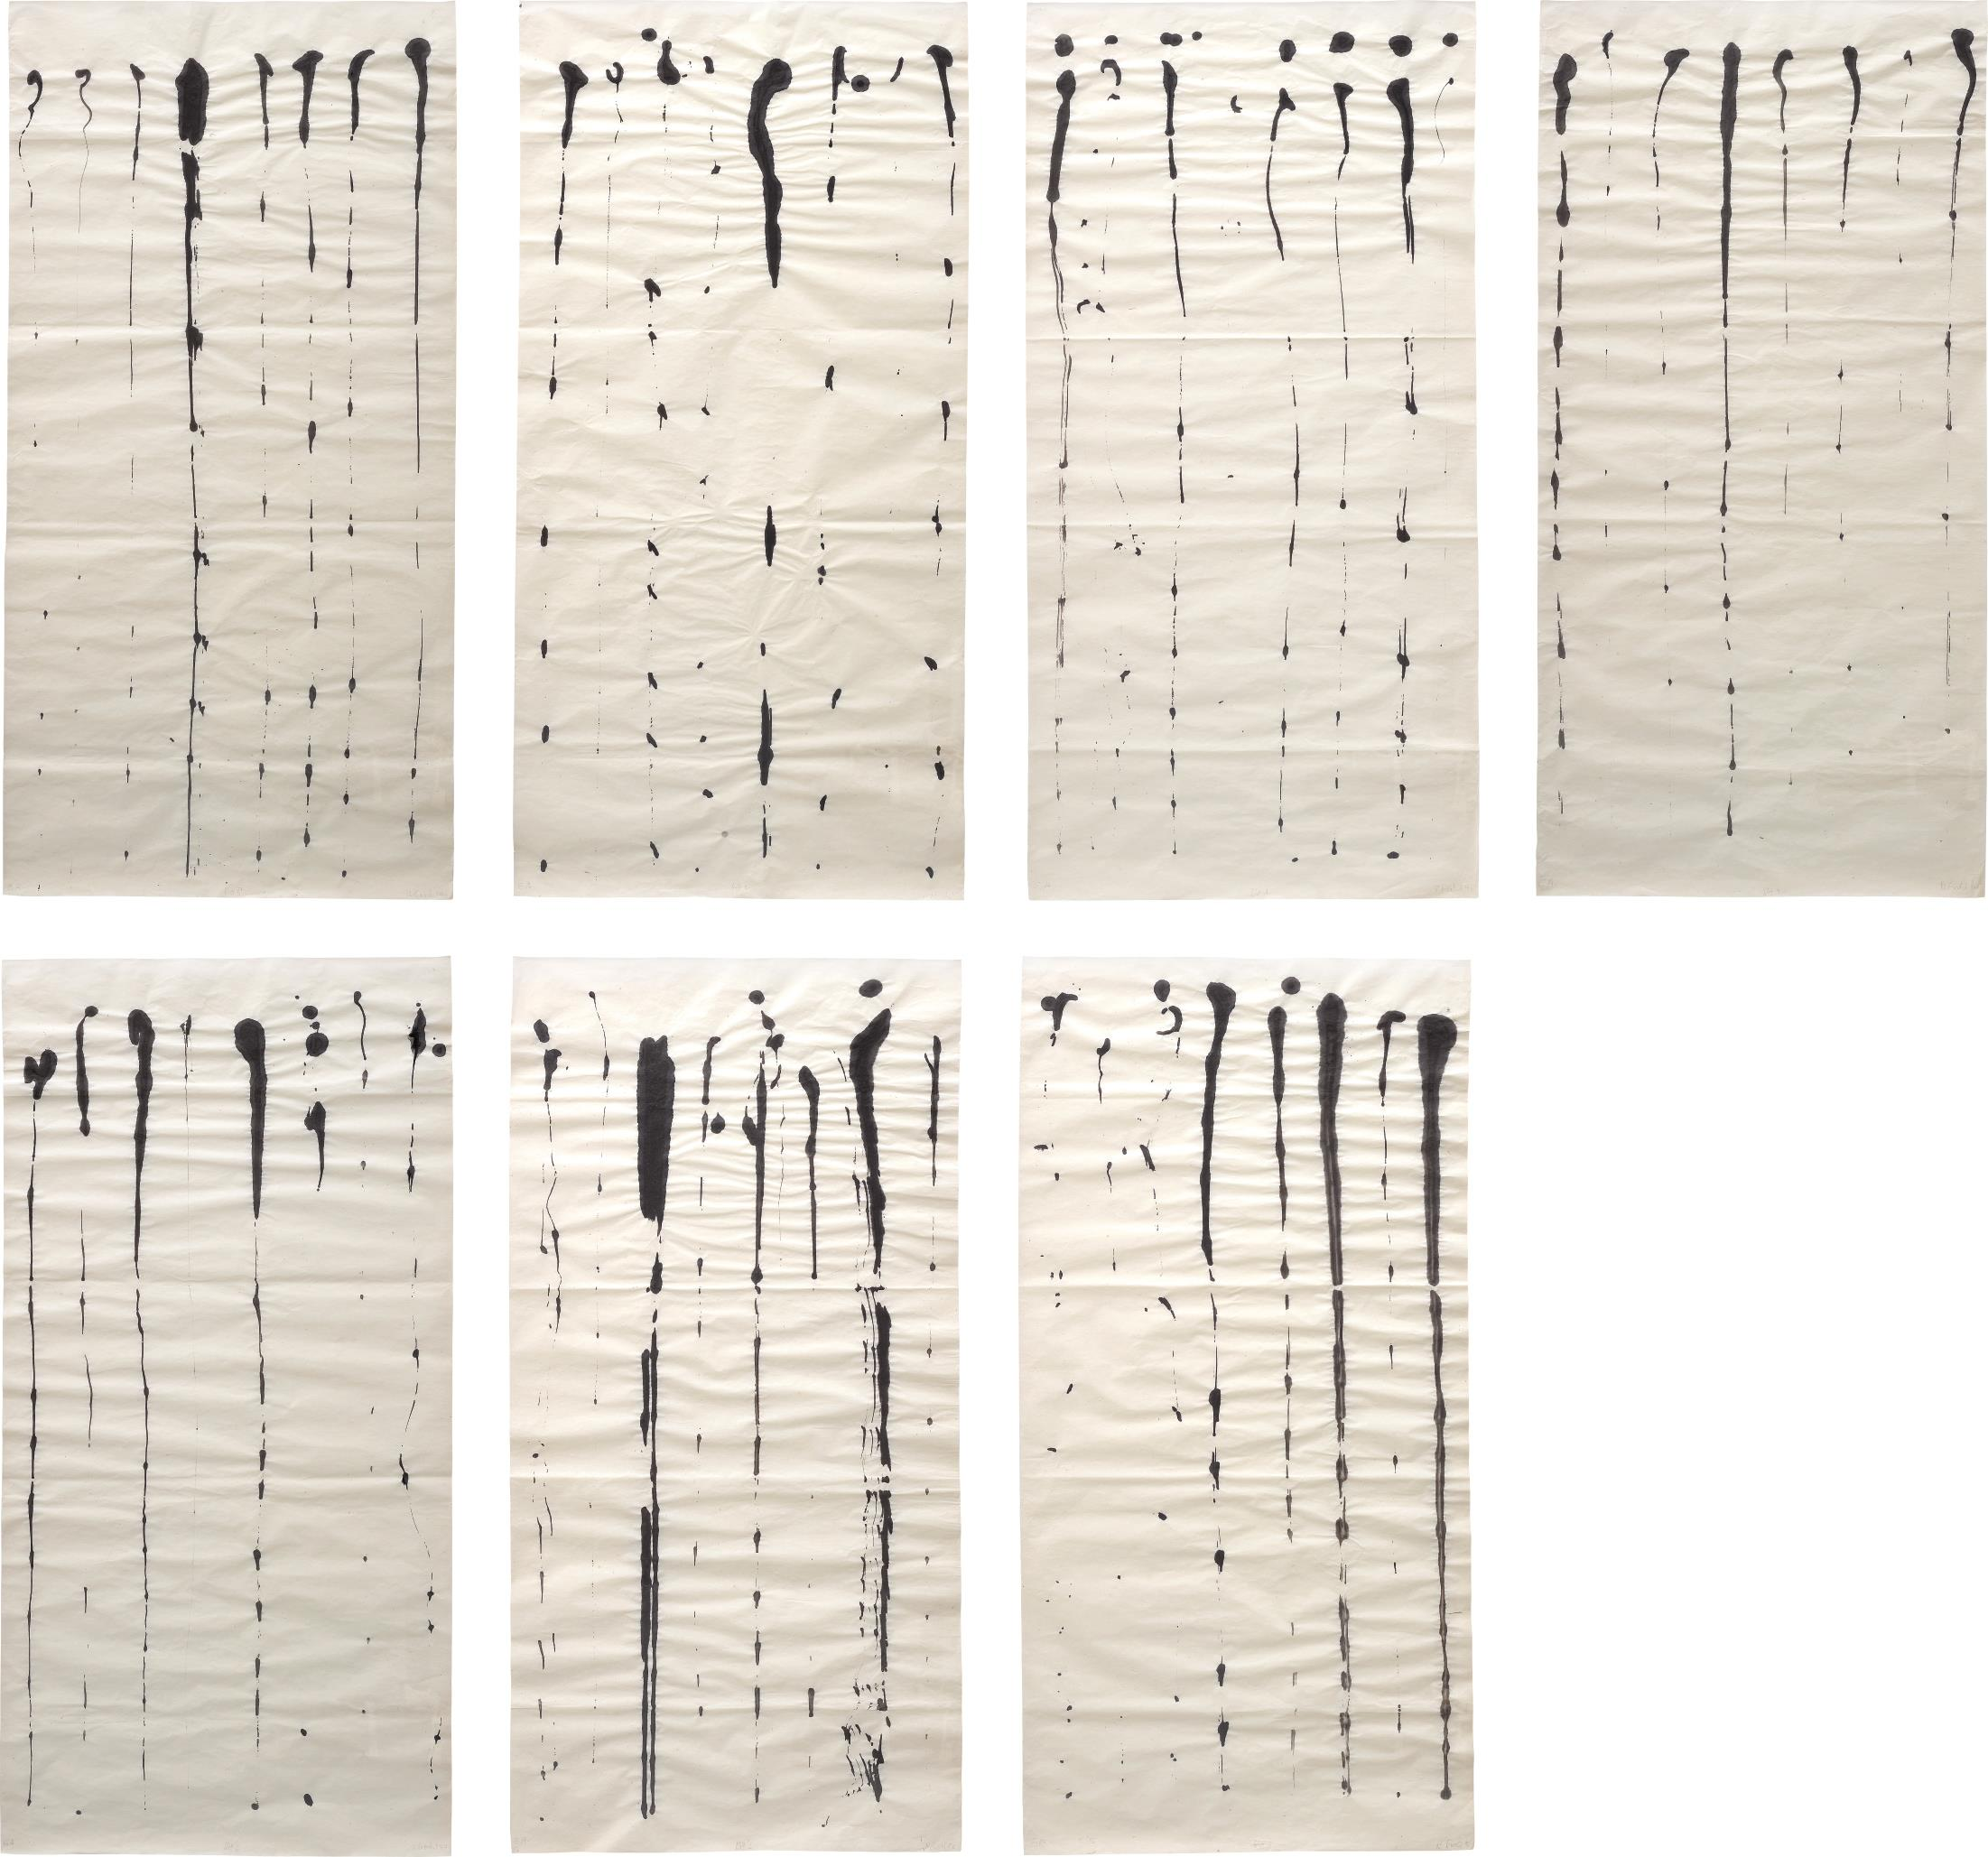 Rosemarie Trockel-56 Brush Strokes-1990